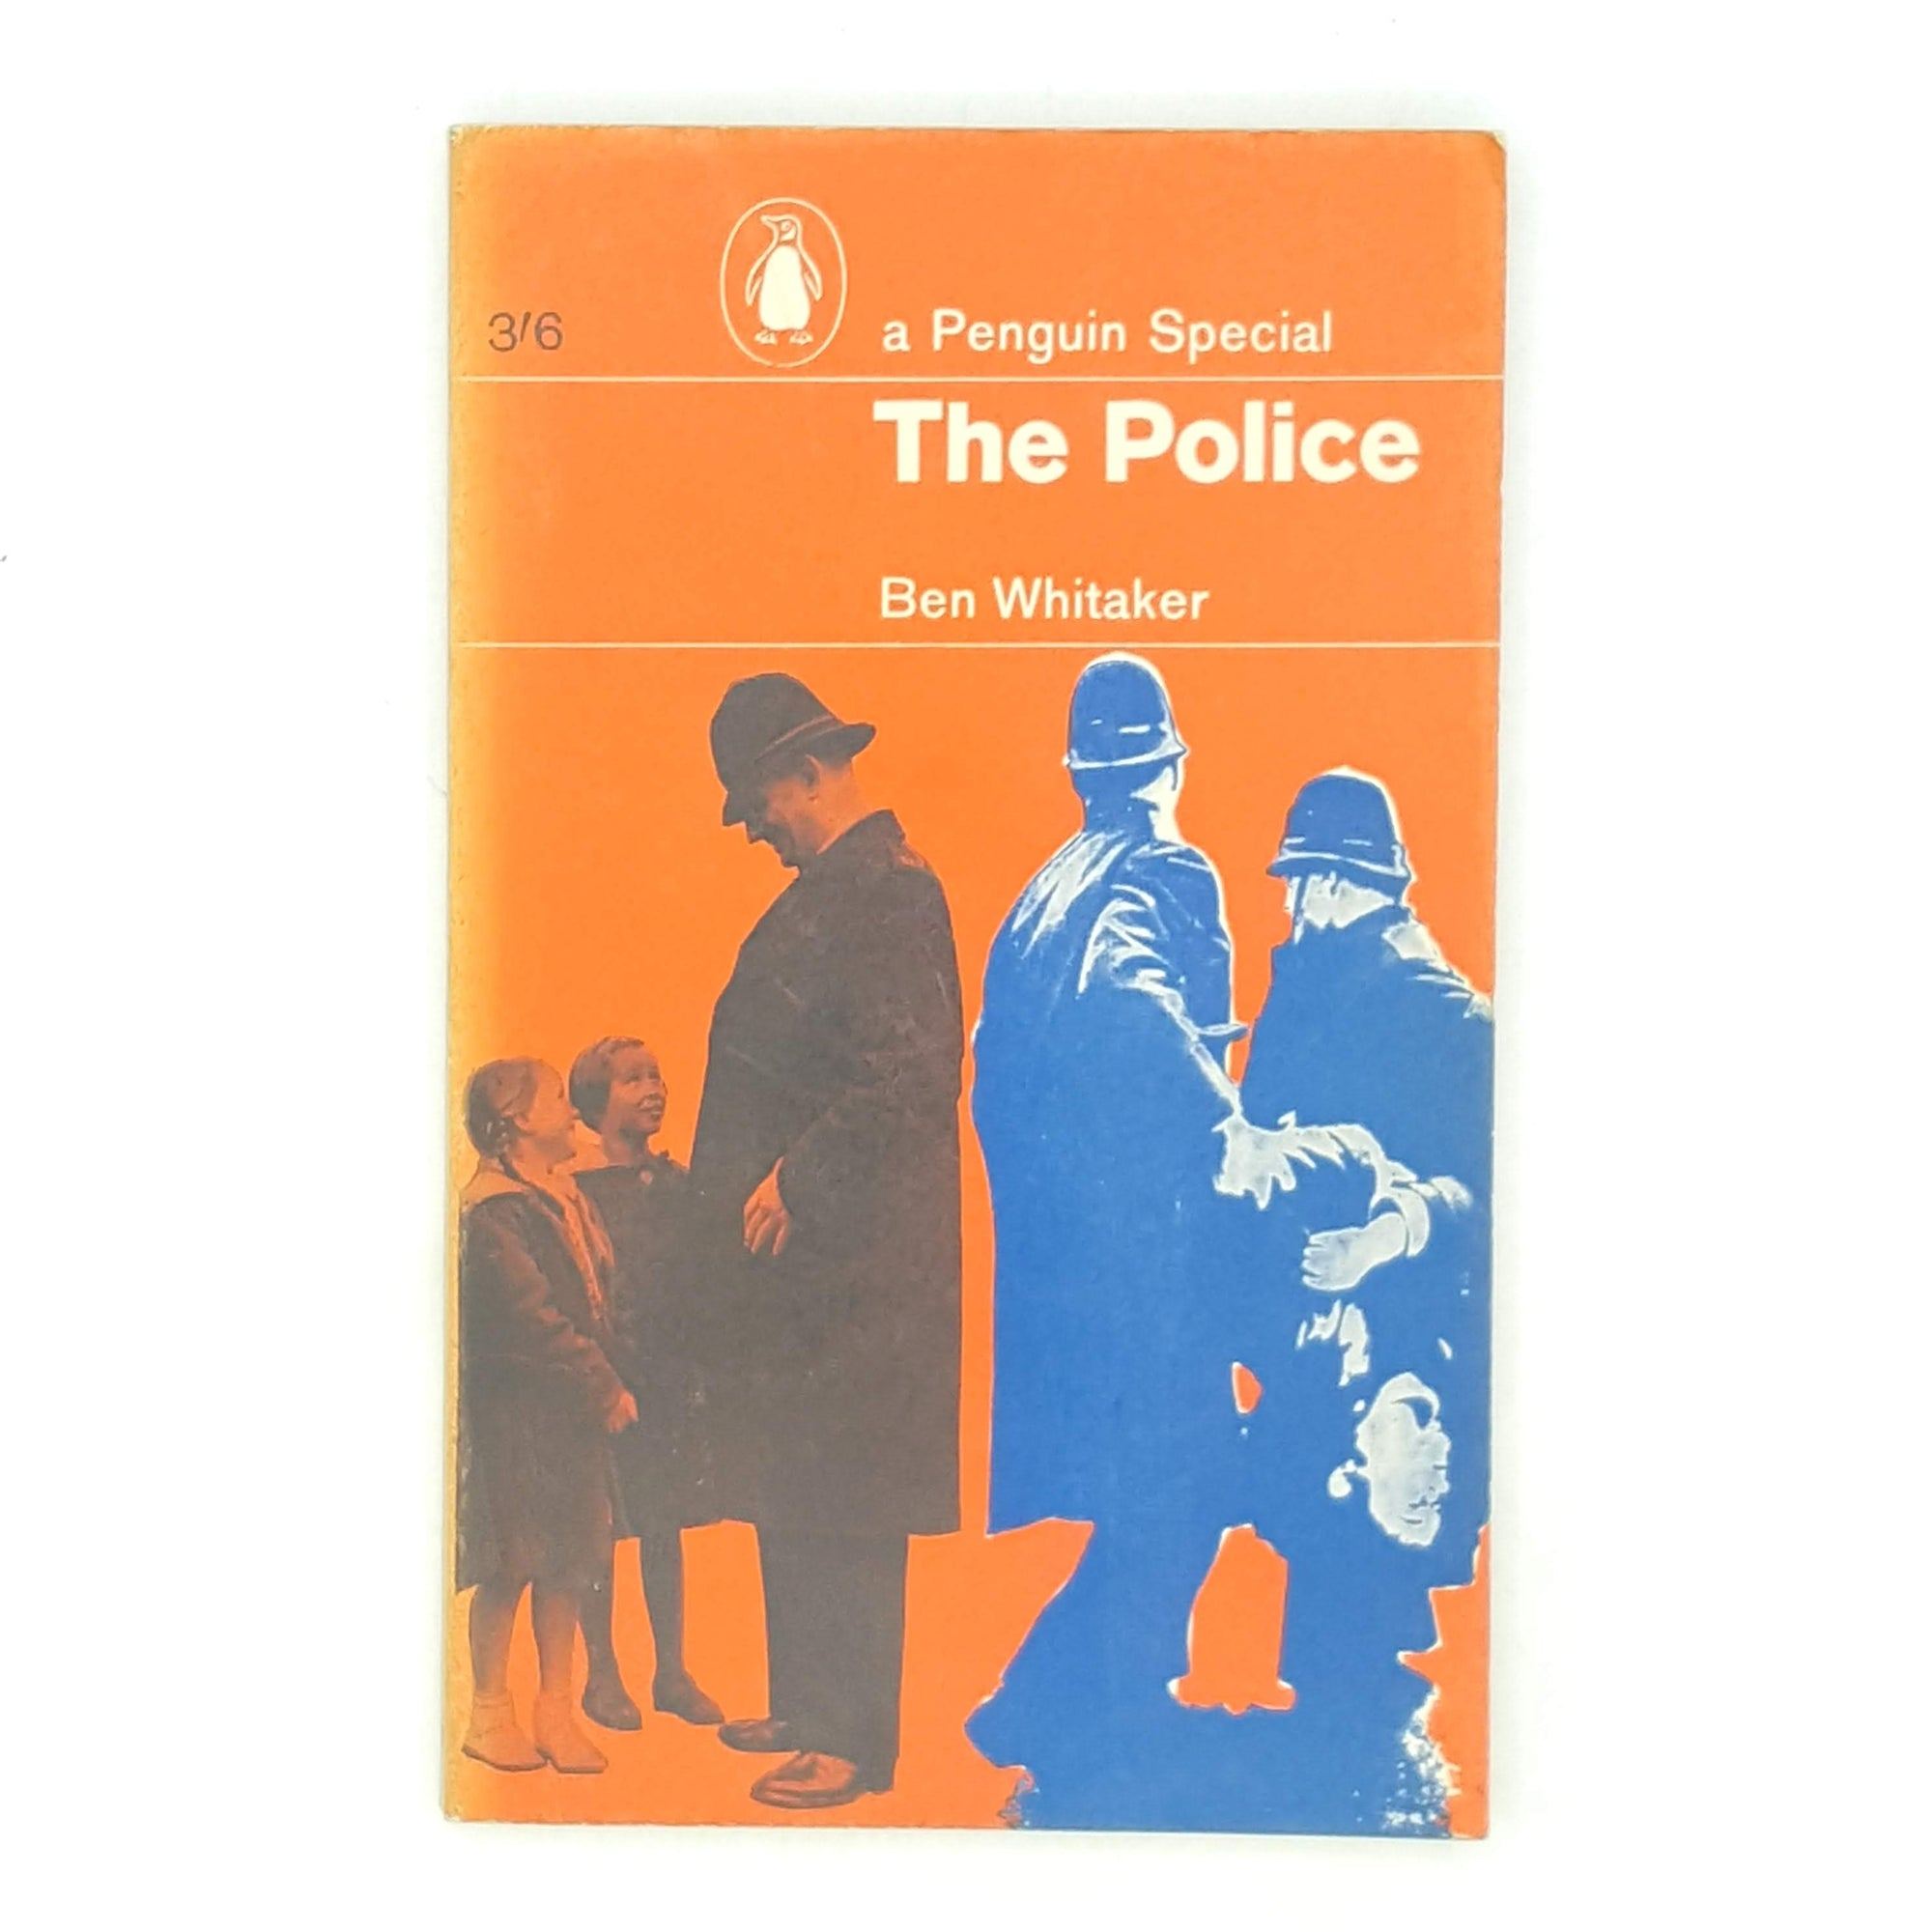 The Police by Ben Whitaker, Penguin Special Edition